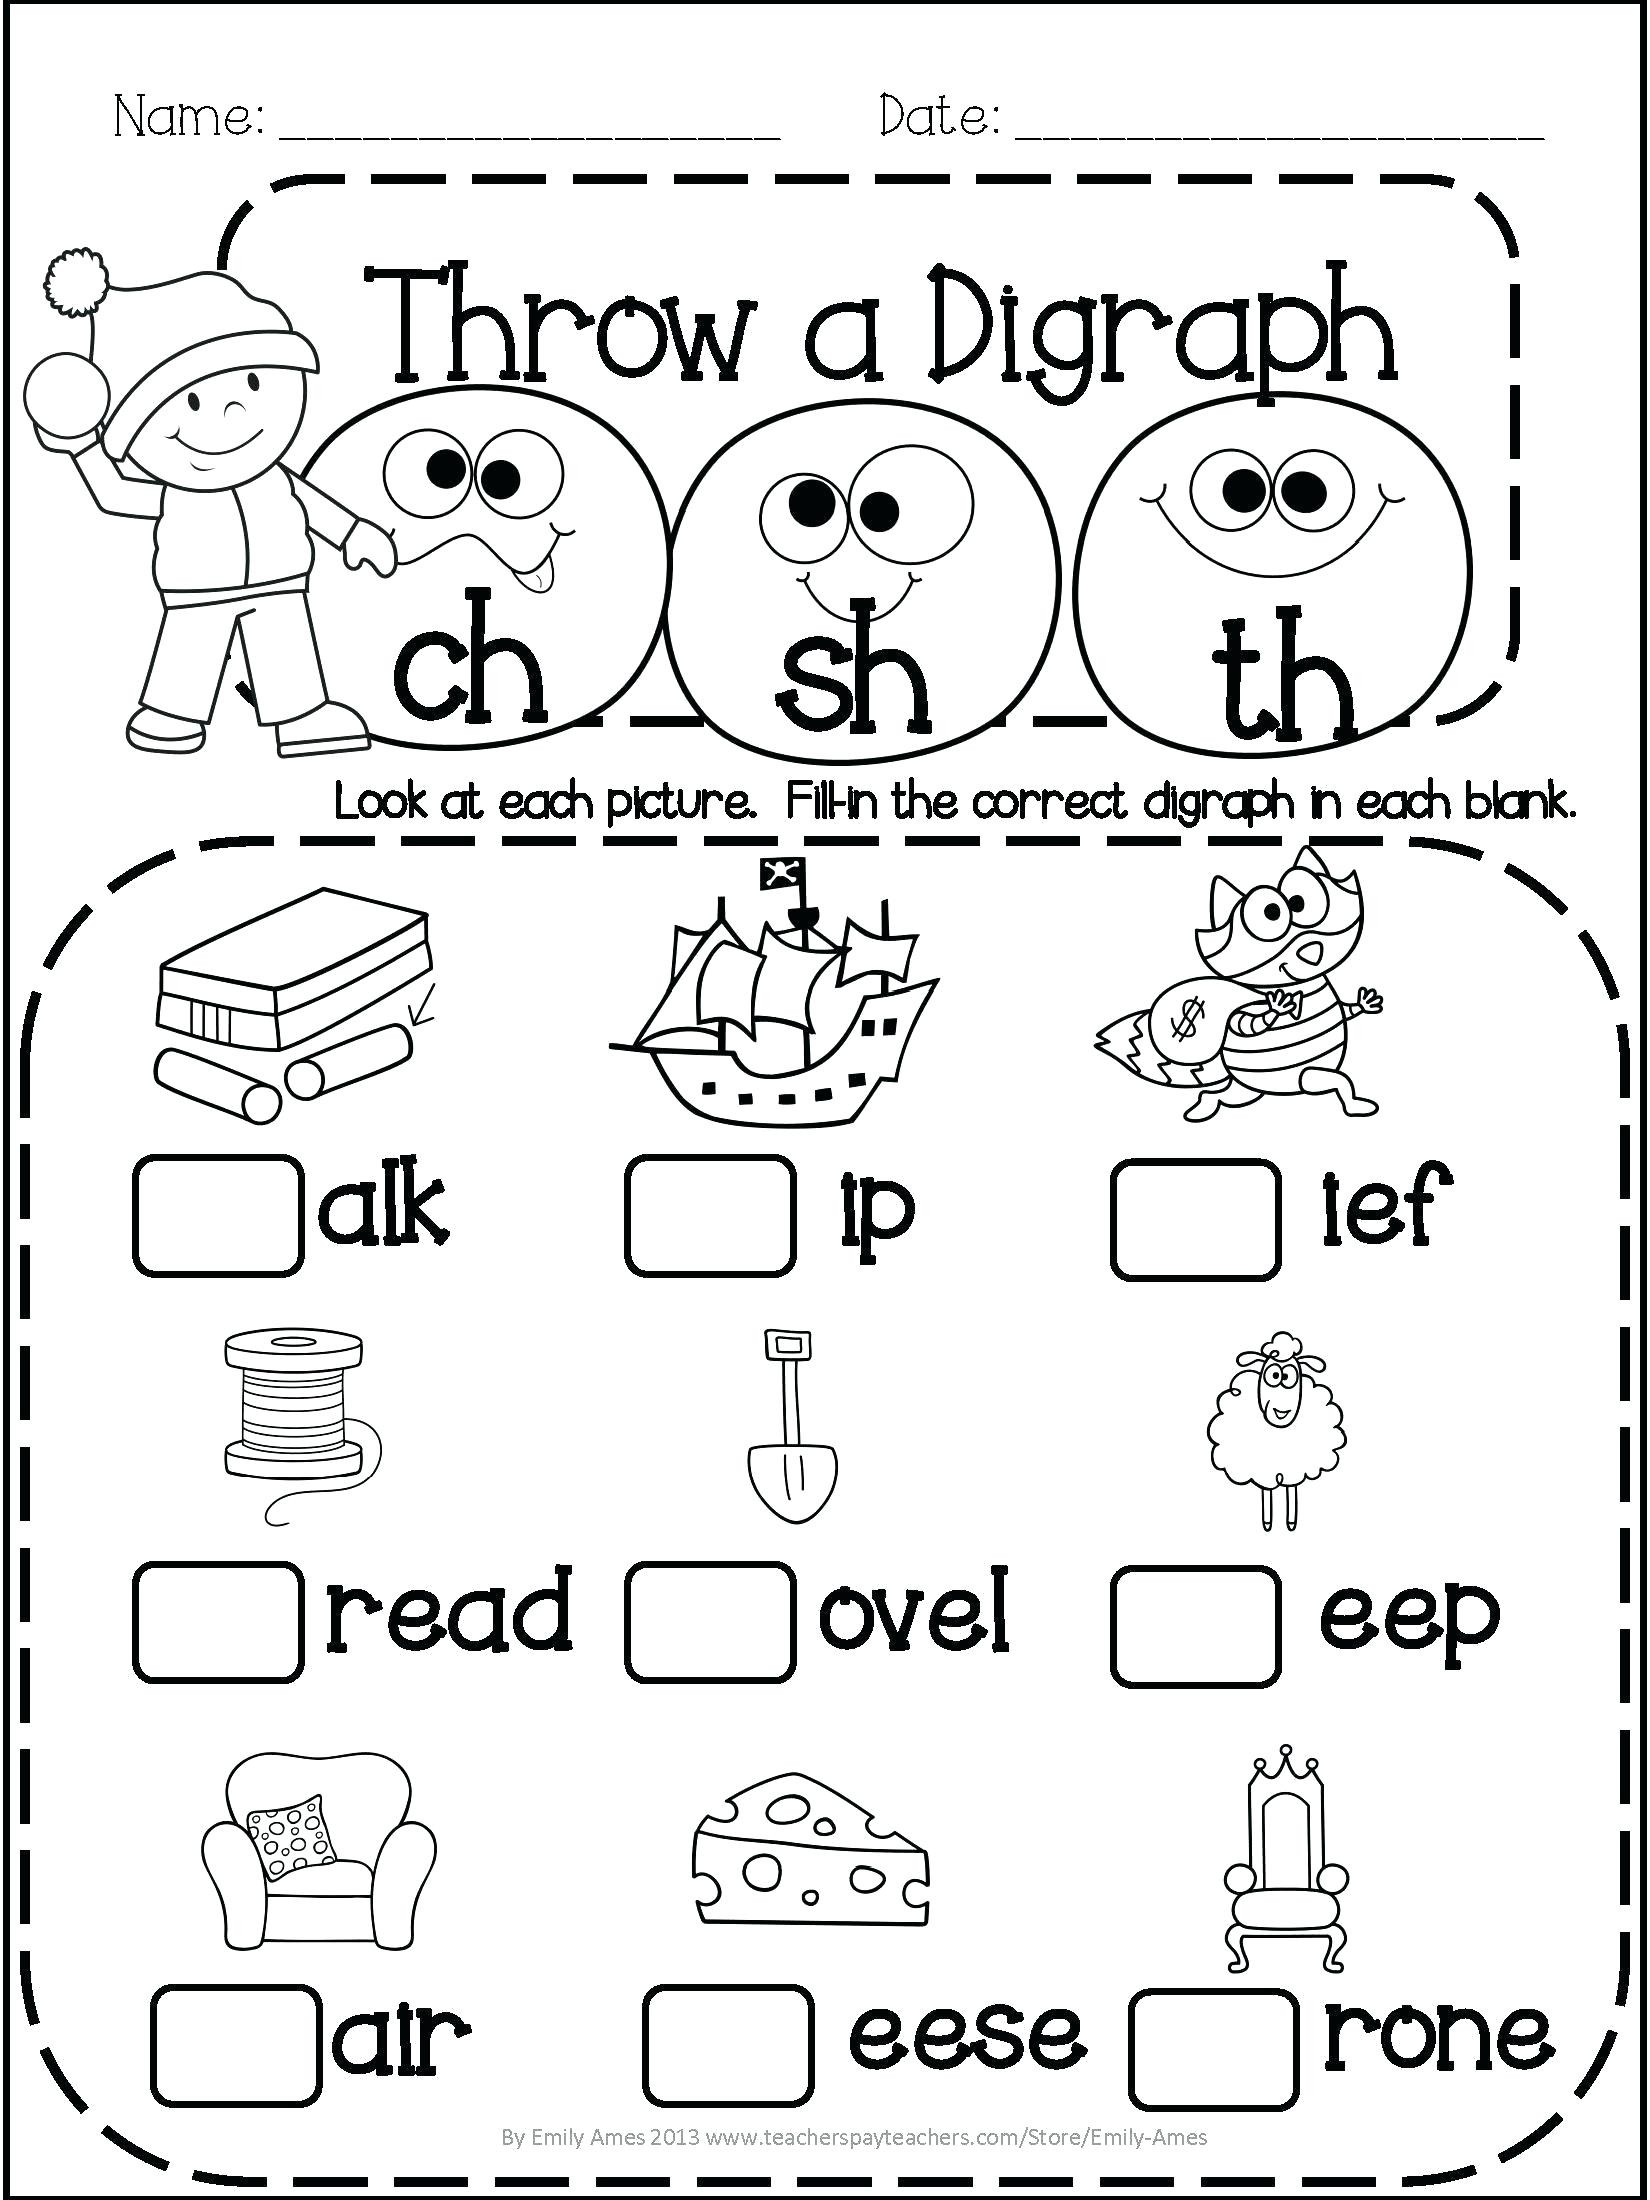 Saxon Math First Grade Worksheets Generationinitiative Free Printable Math Worksheets 5th